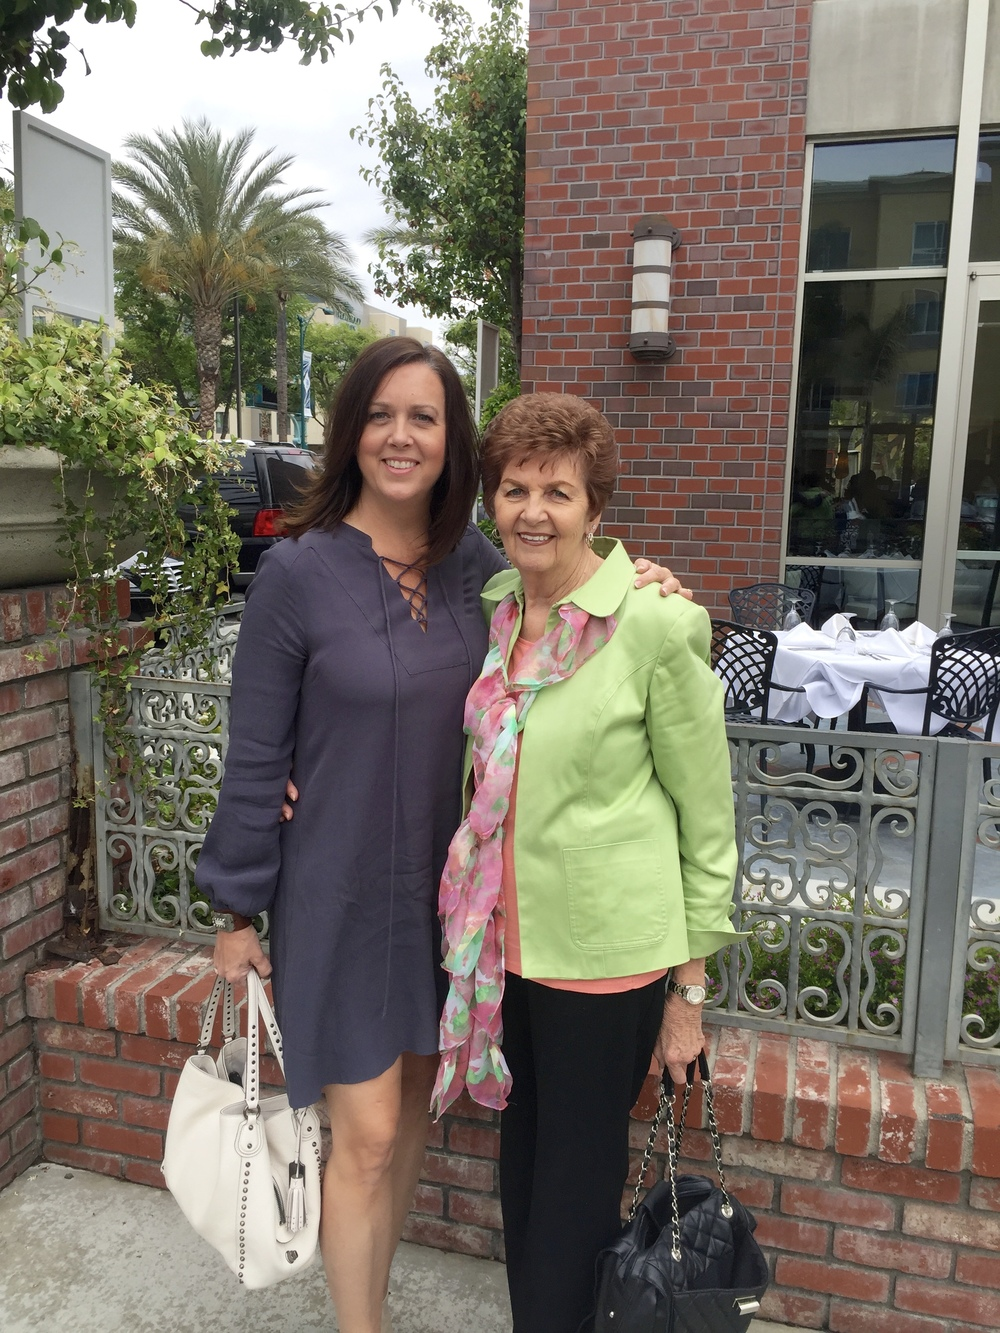 Me and my momma today.  We are so glad she has moved from the OC to our area so we can be closer!  It's so great to have her near us and to go to the same church with her!